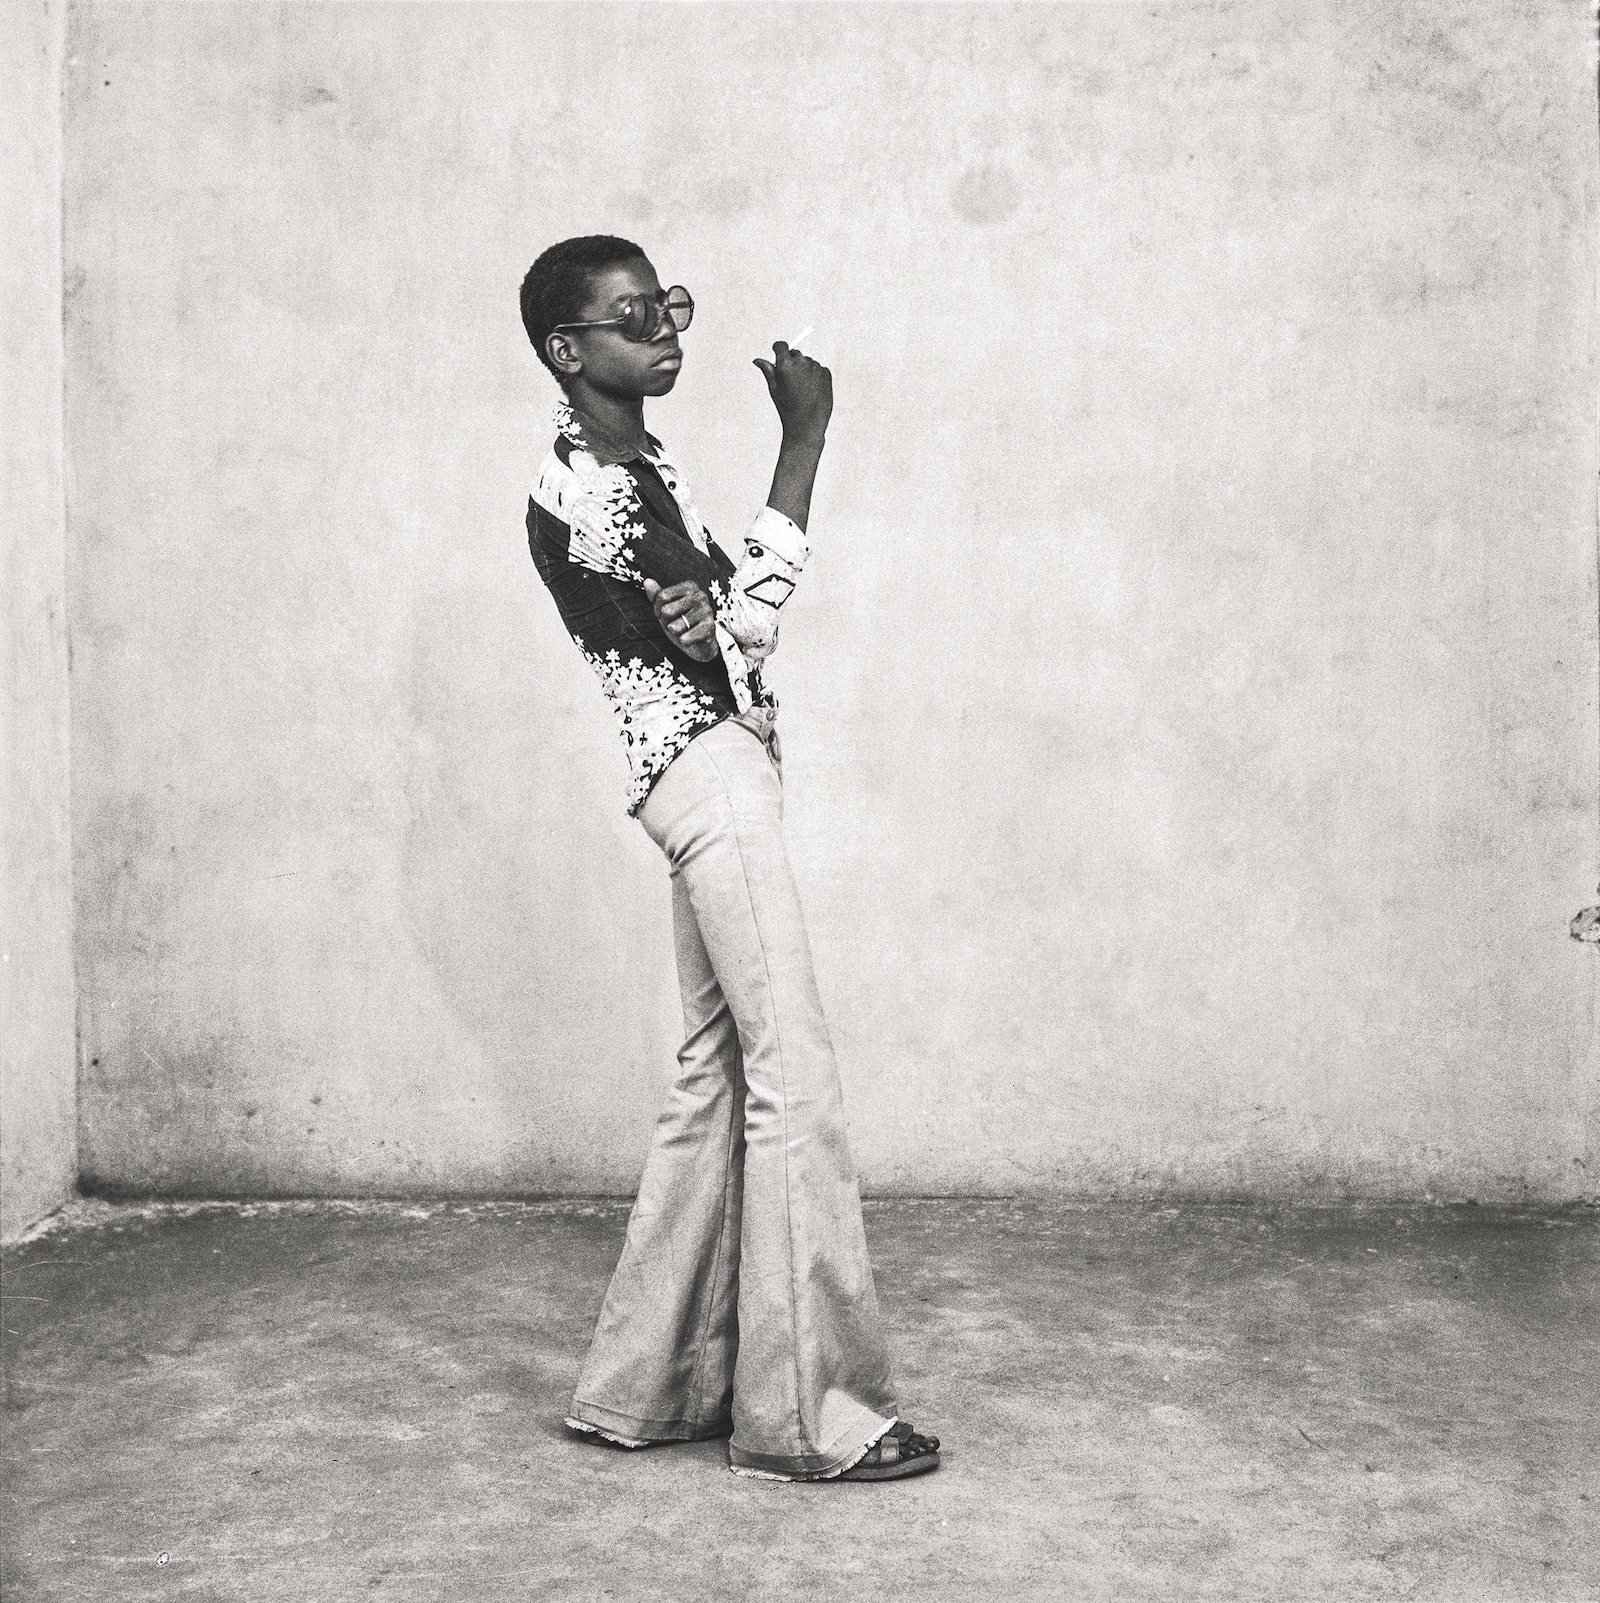 Un yéyé en position, 1963. Collection Fondation Cartier pour l'art contemporain, Paris © Malick Sidibé Extract from Mali Twist (Éditions Xavier Barral, Fondation Cartier pour l'art contemporain, 2017)